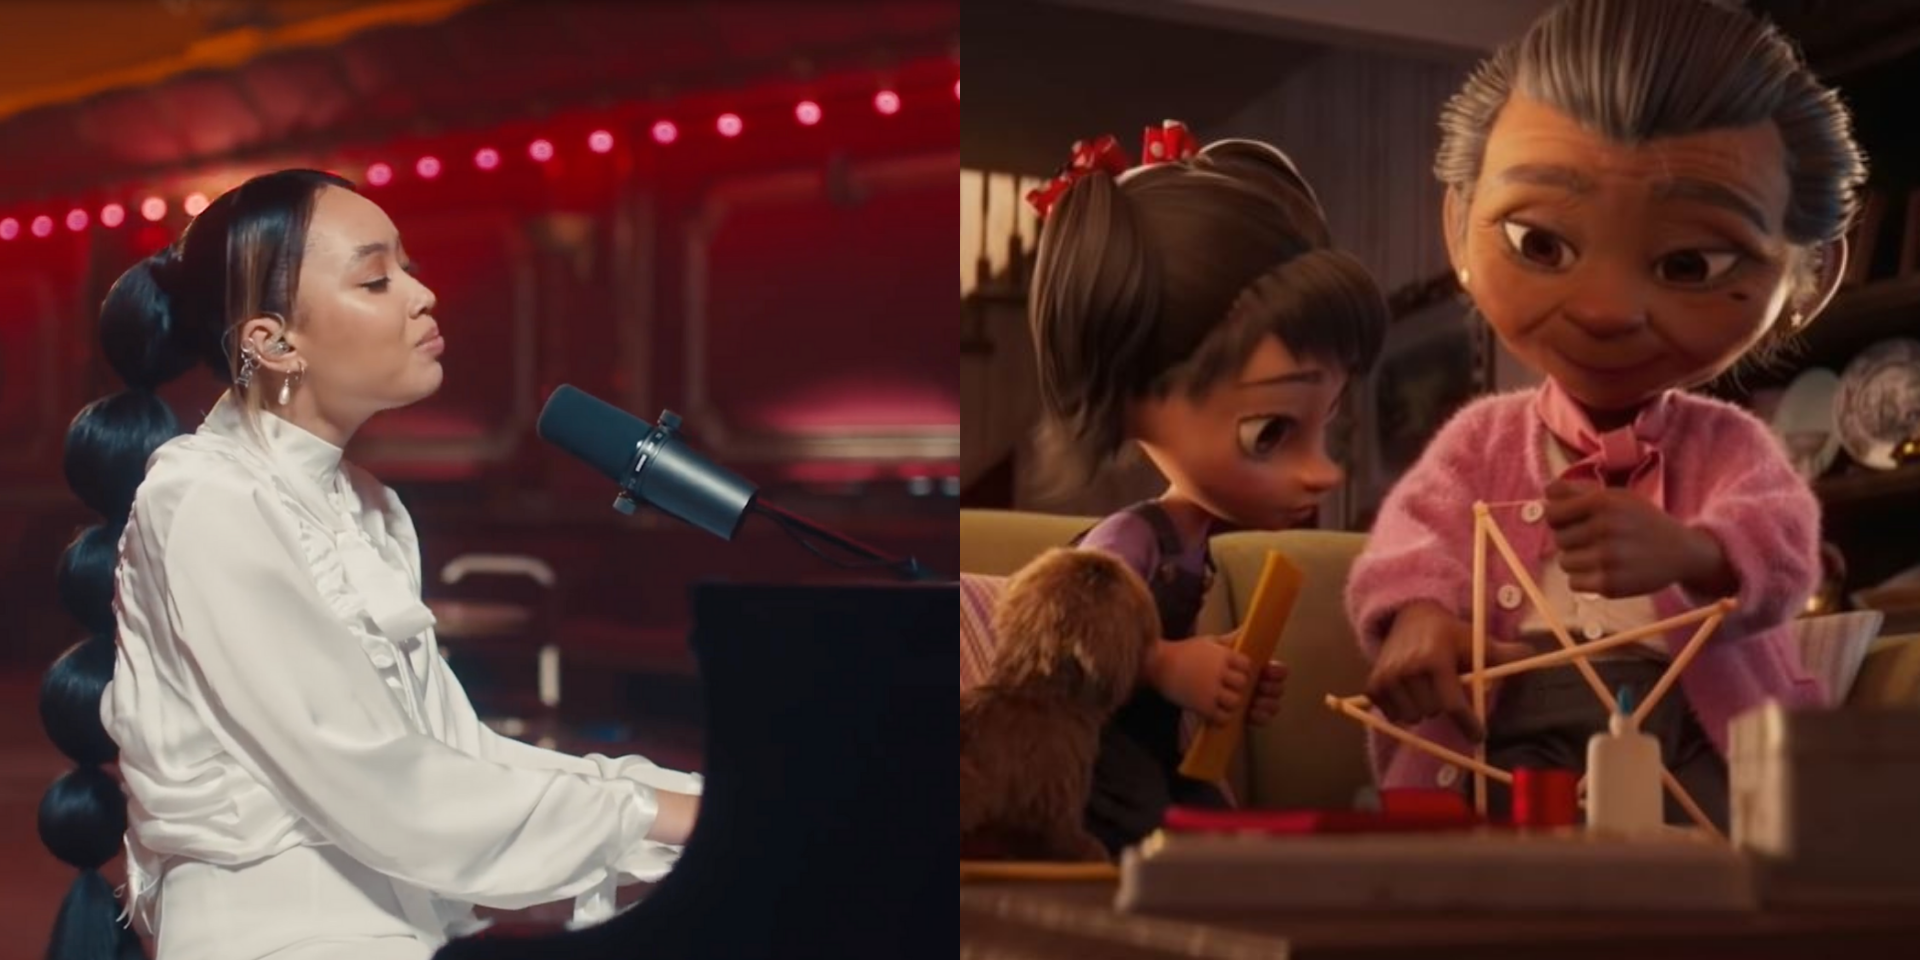 Griff shares 'Love Is A Compass' in Disney's new heartwarming campaign telling the story of a Filipino Christmas – watch